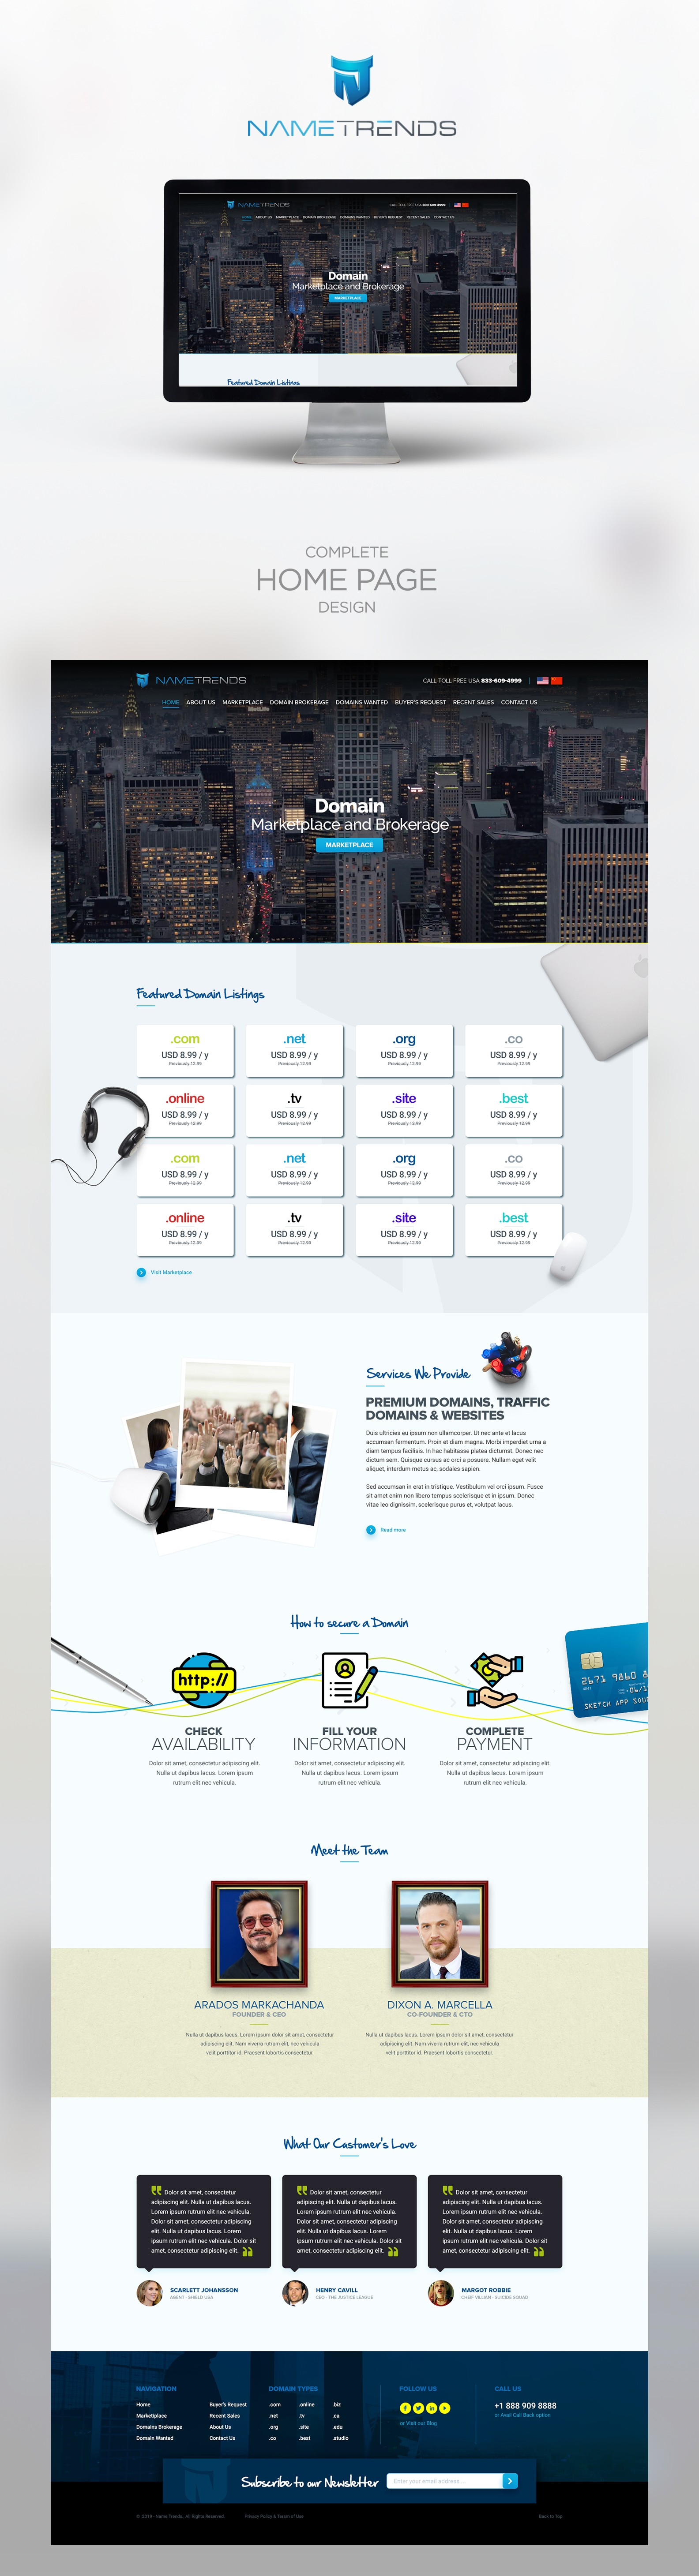 Home Page and Logo for my Domain Marketplace